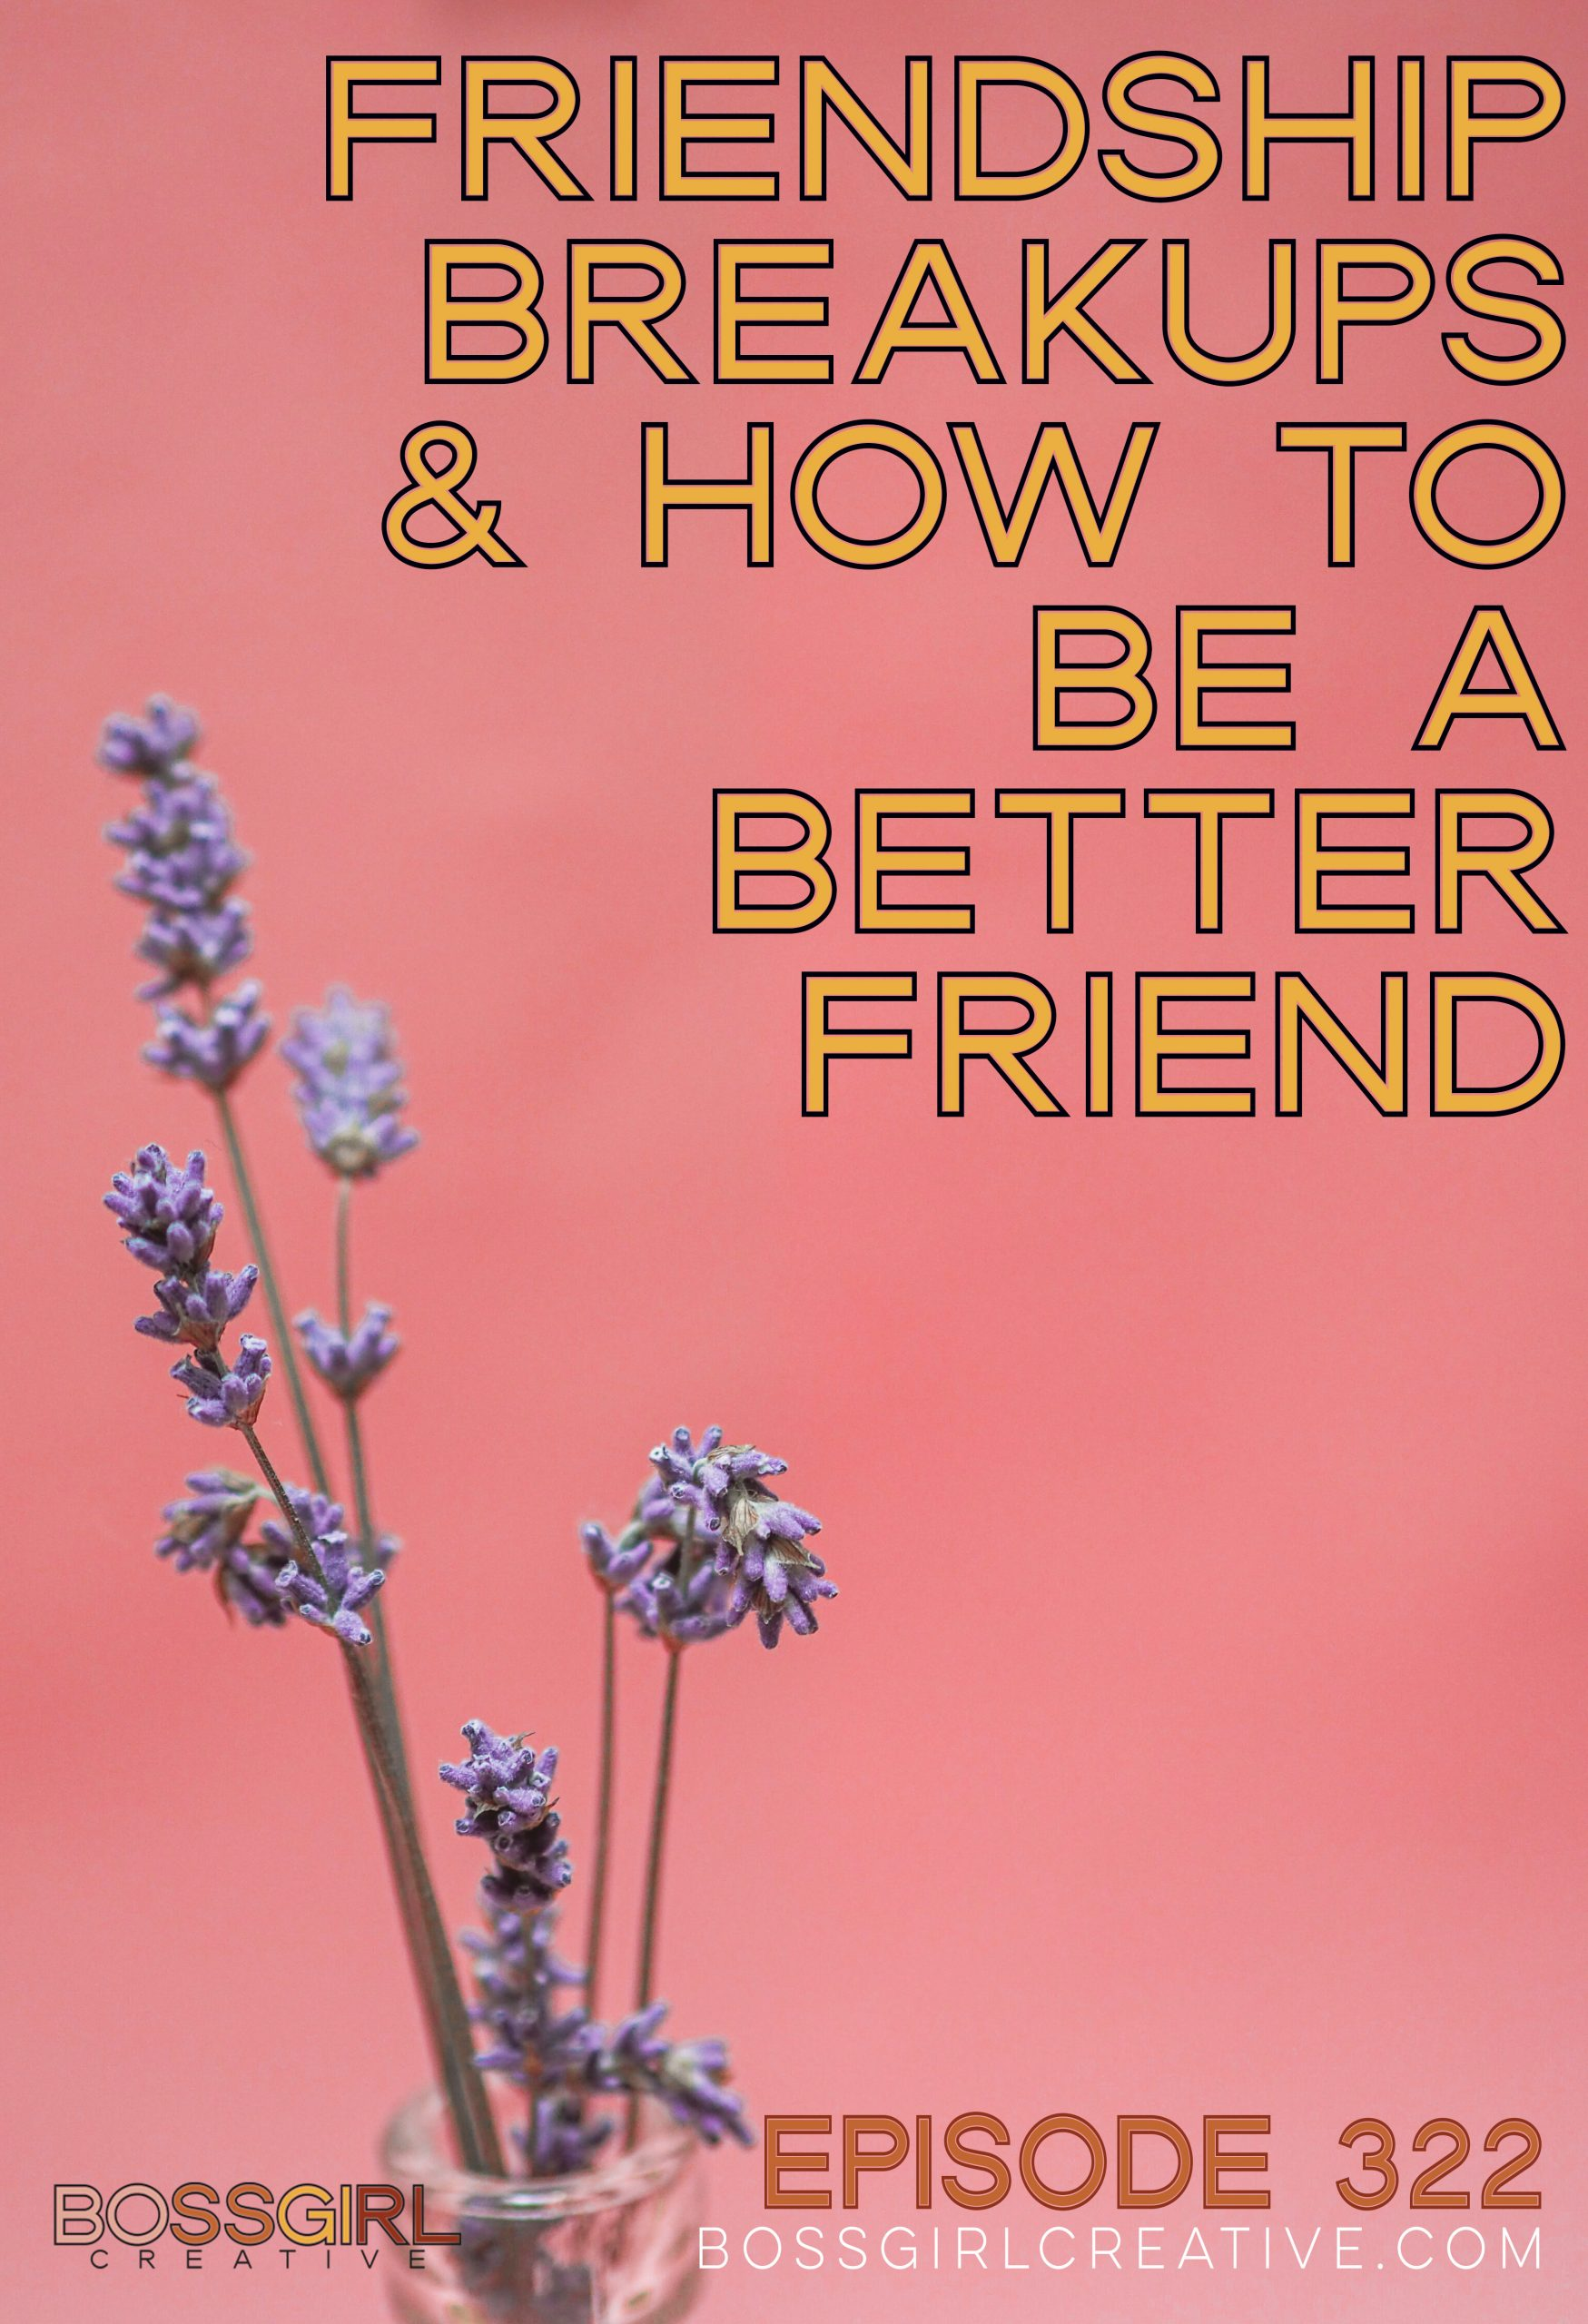 BGC Episode 322 - Friendship Breakups & How to Be a Better Friend